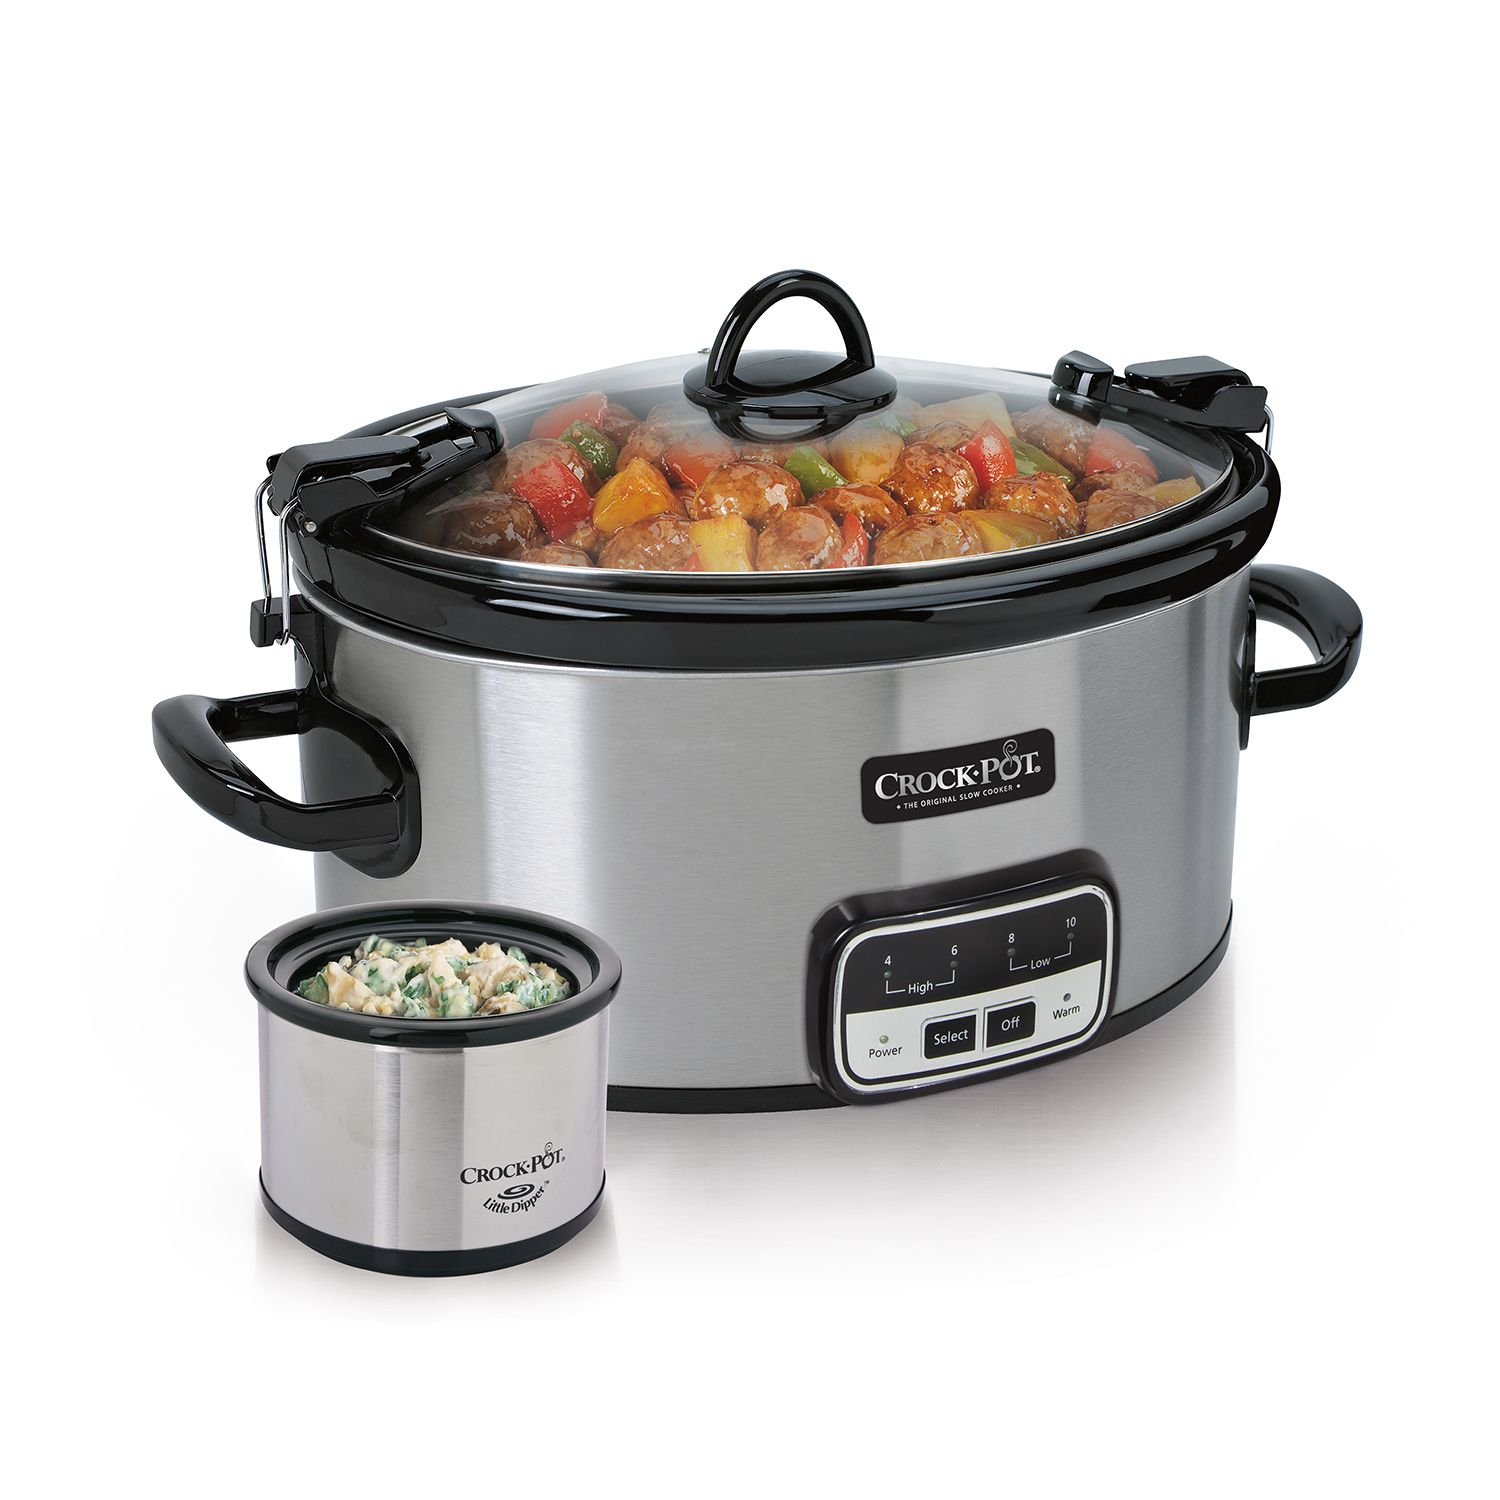 Crock-Pot 6-Quart Cook and Carry Slow Cooker with Little Dipper Warmer (Silver)